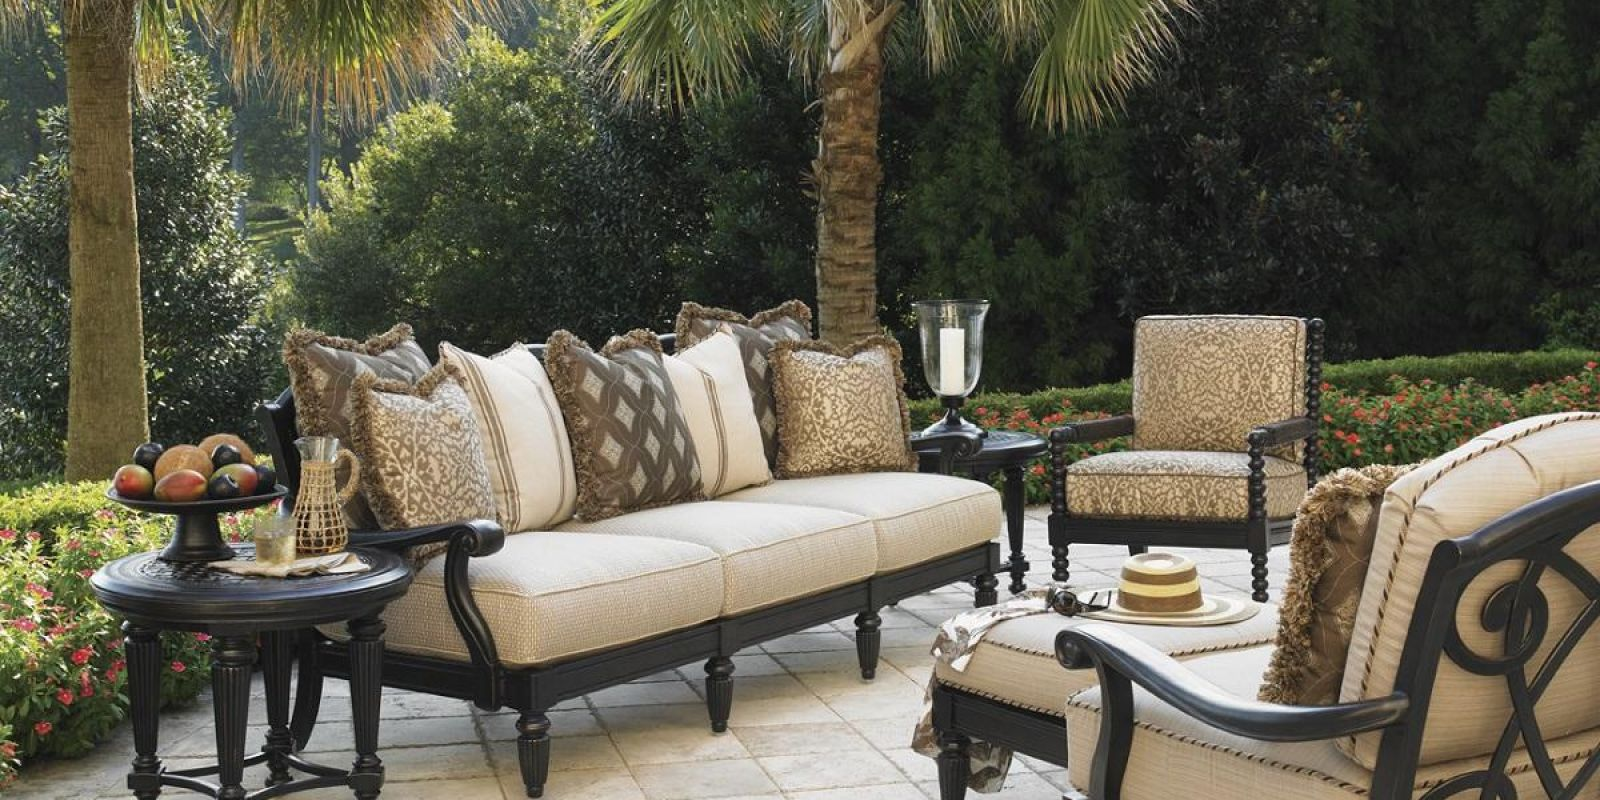 Outdoor Furniture | American Casual Living on Porch & Patio Casual Living id=94201